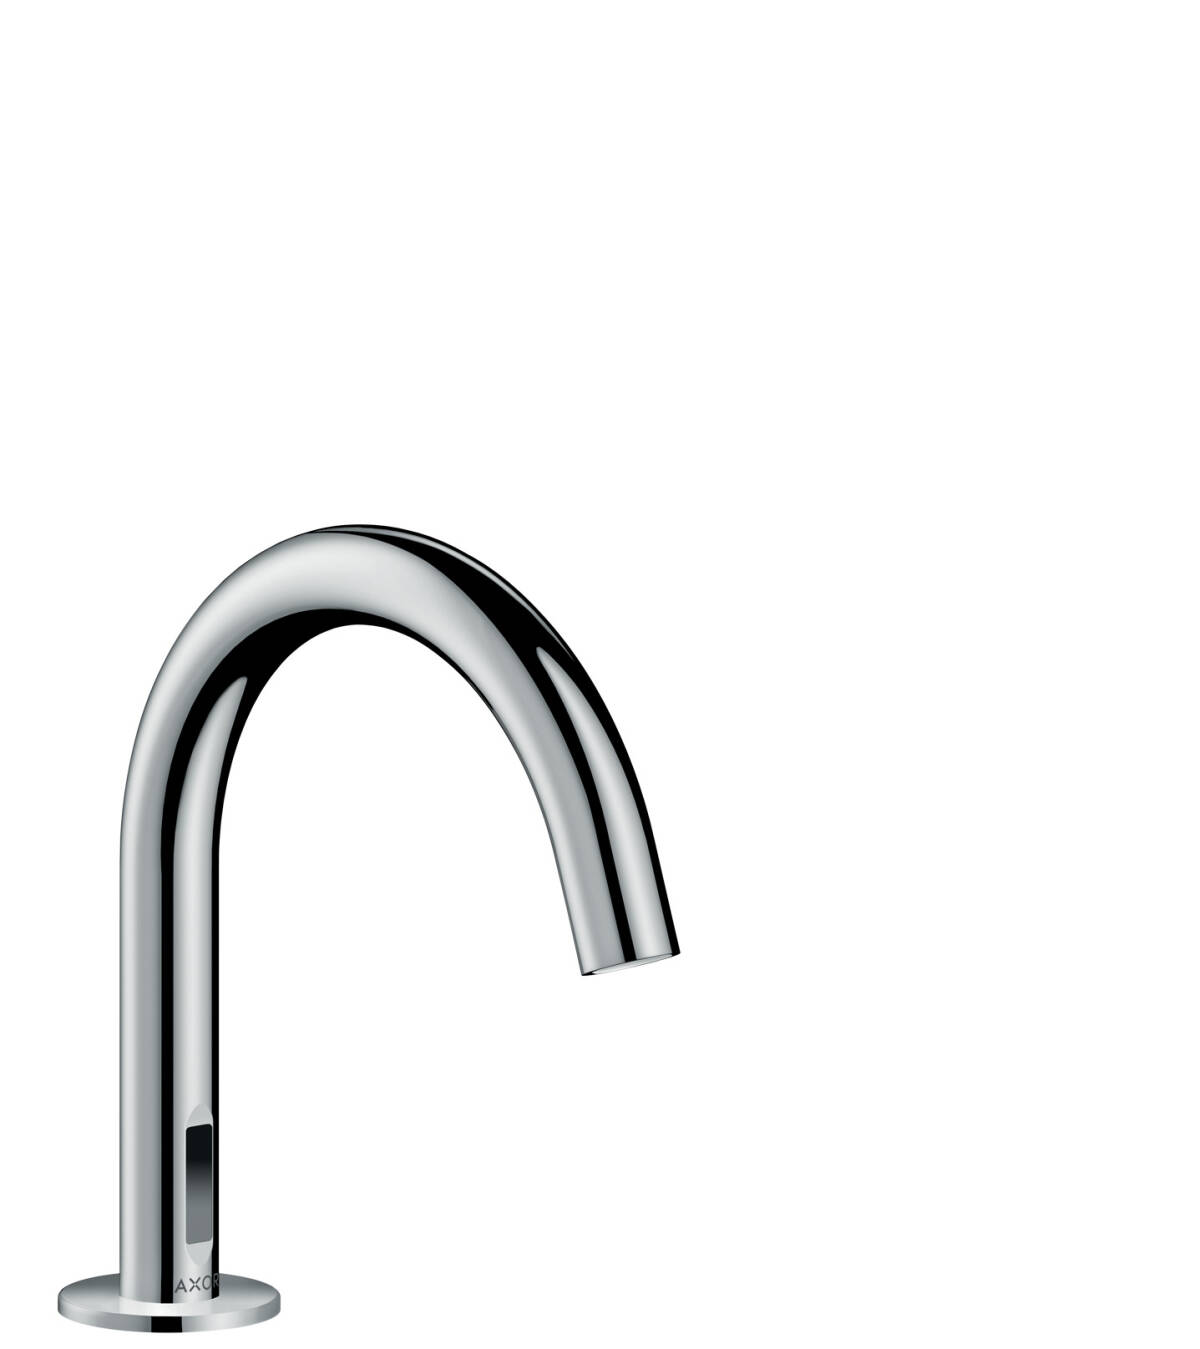 Electronic basin mixer with temperature pre-adjustment with mains connection 230 V, Polished Nickel, 38010830